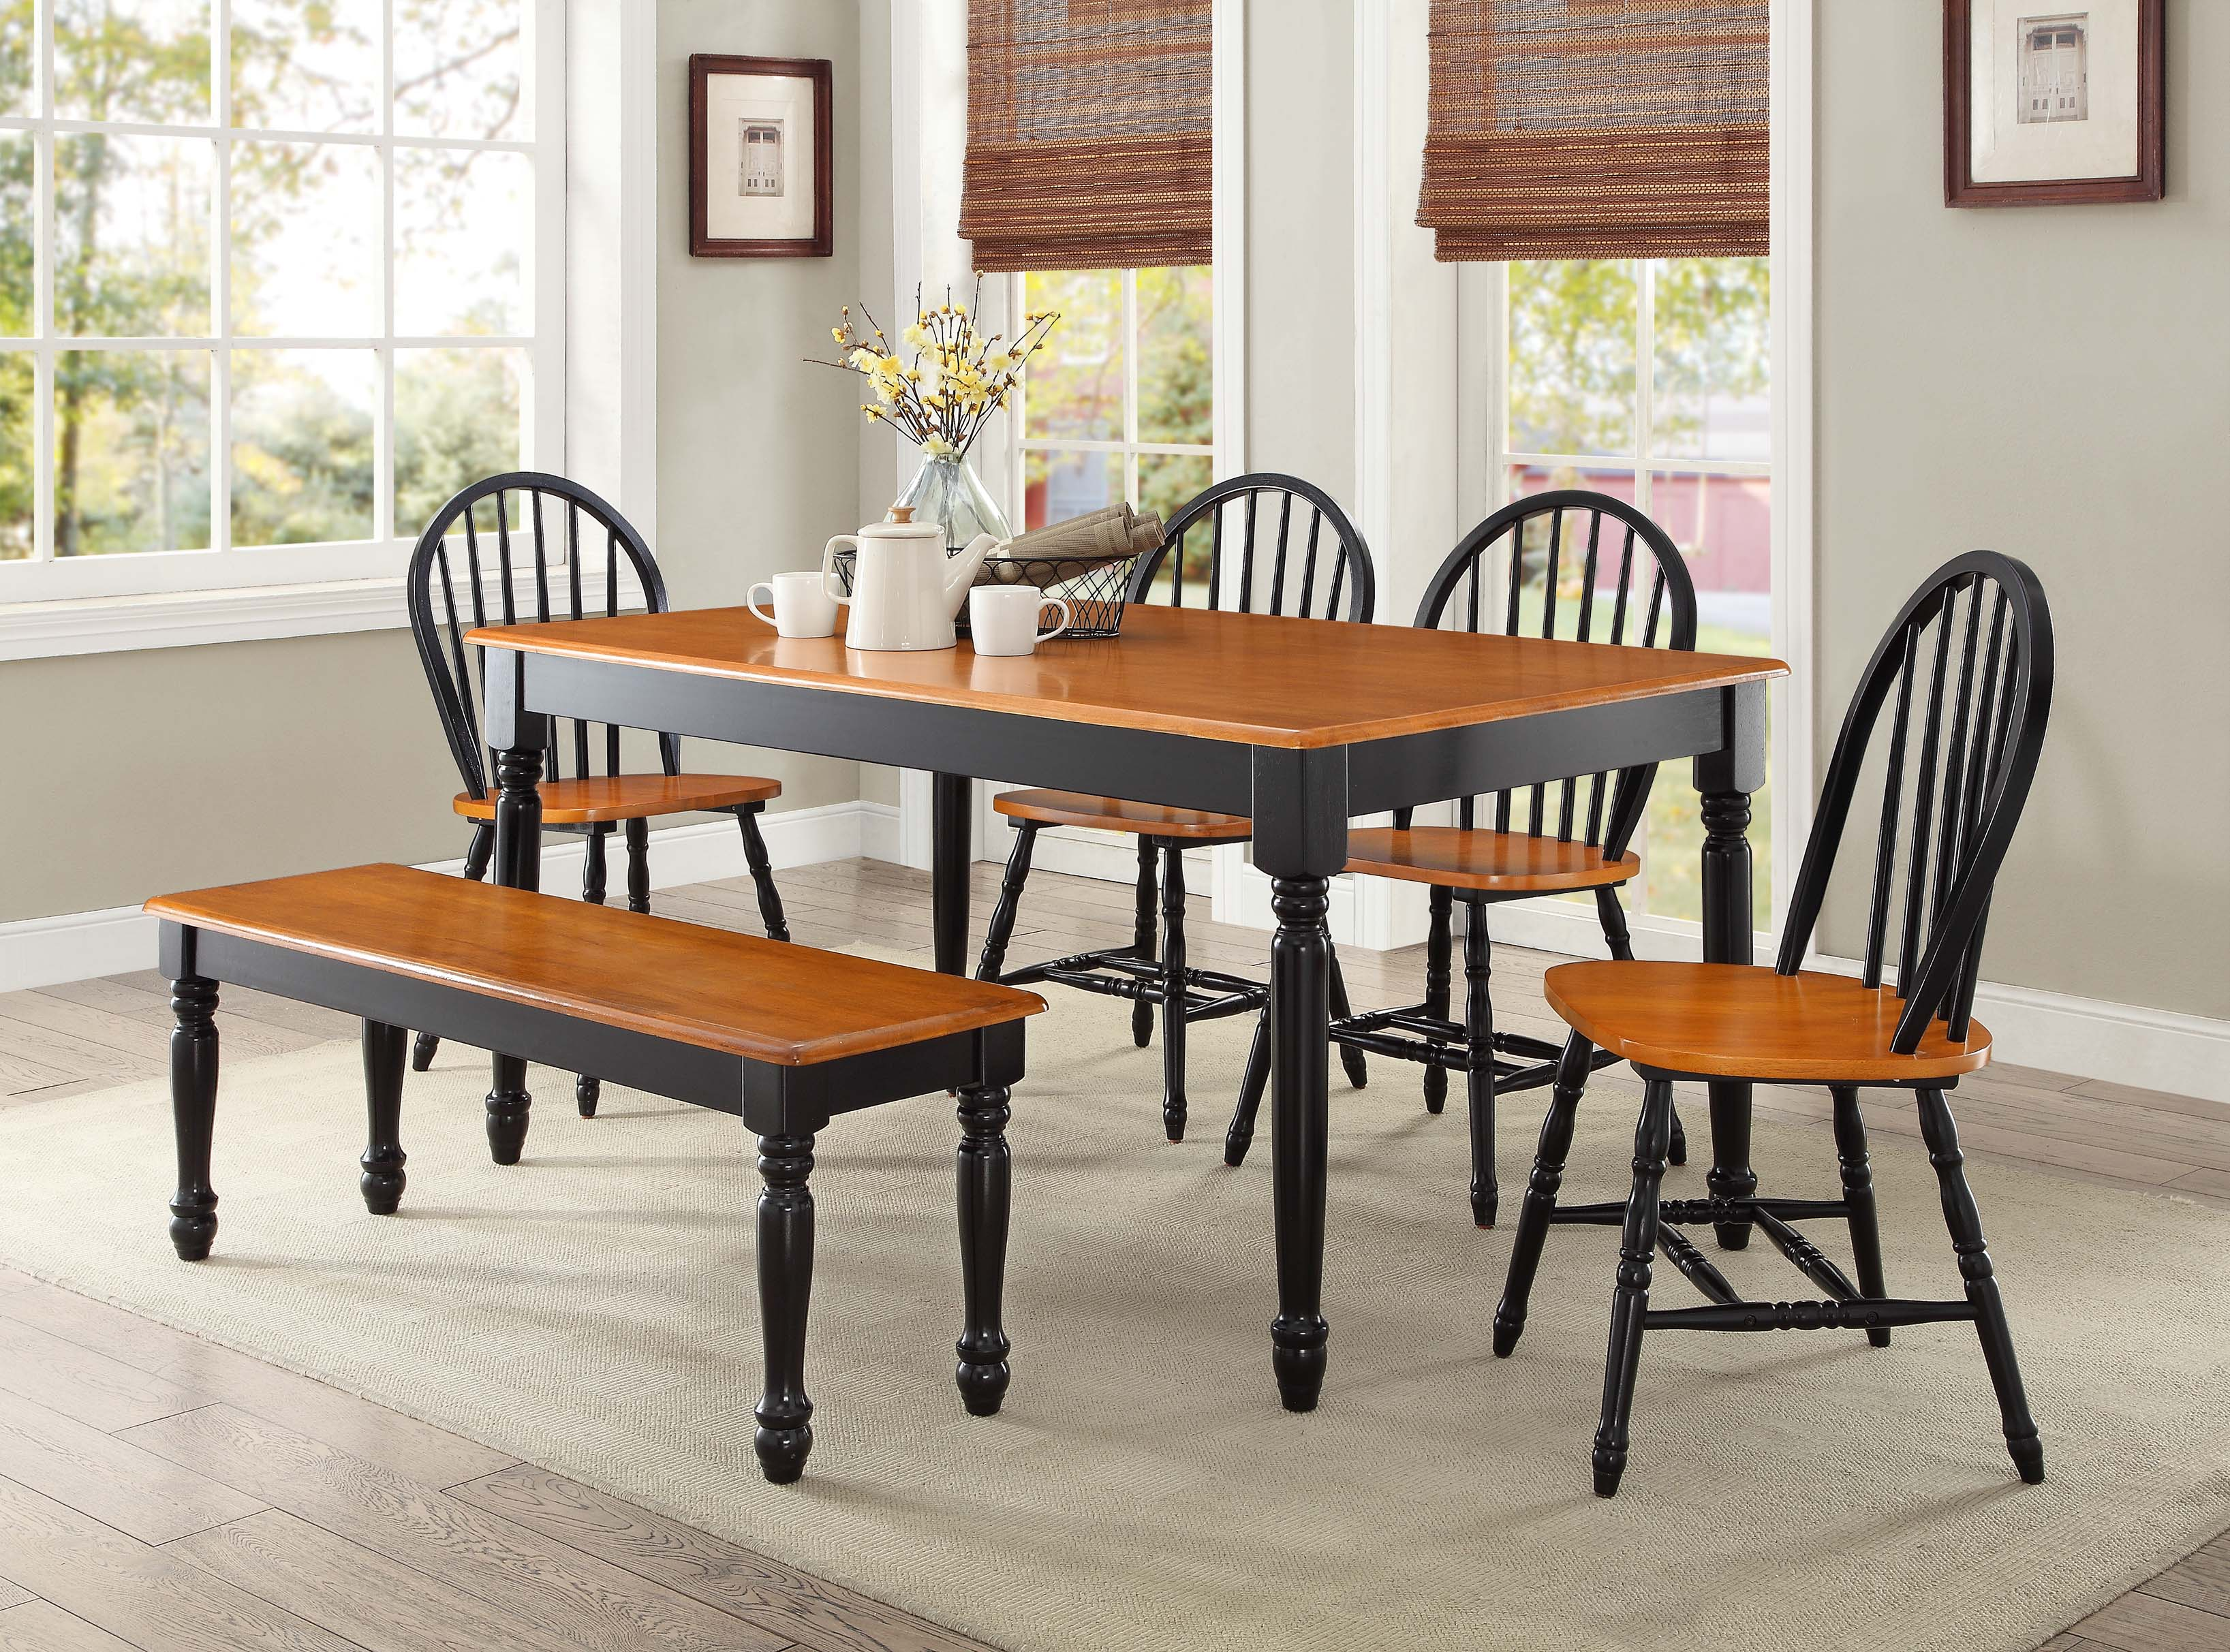 Kitchen Table Set kitchen & dining furniture - walmart